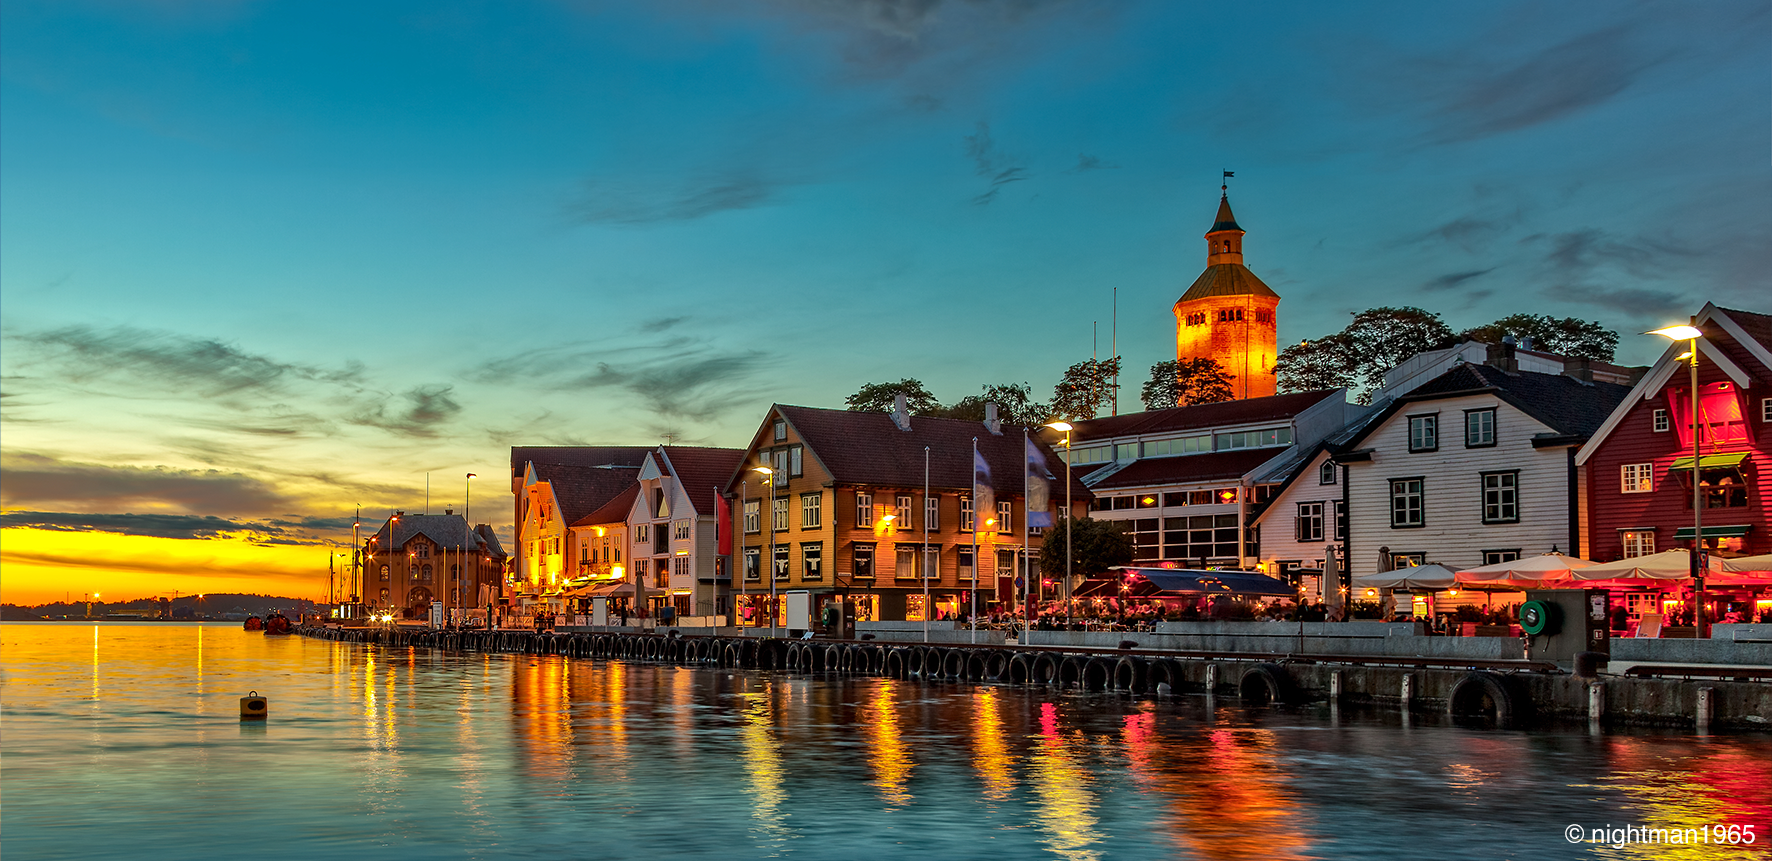 City of Stavanger, Norway